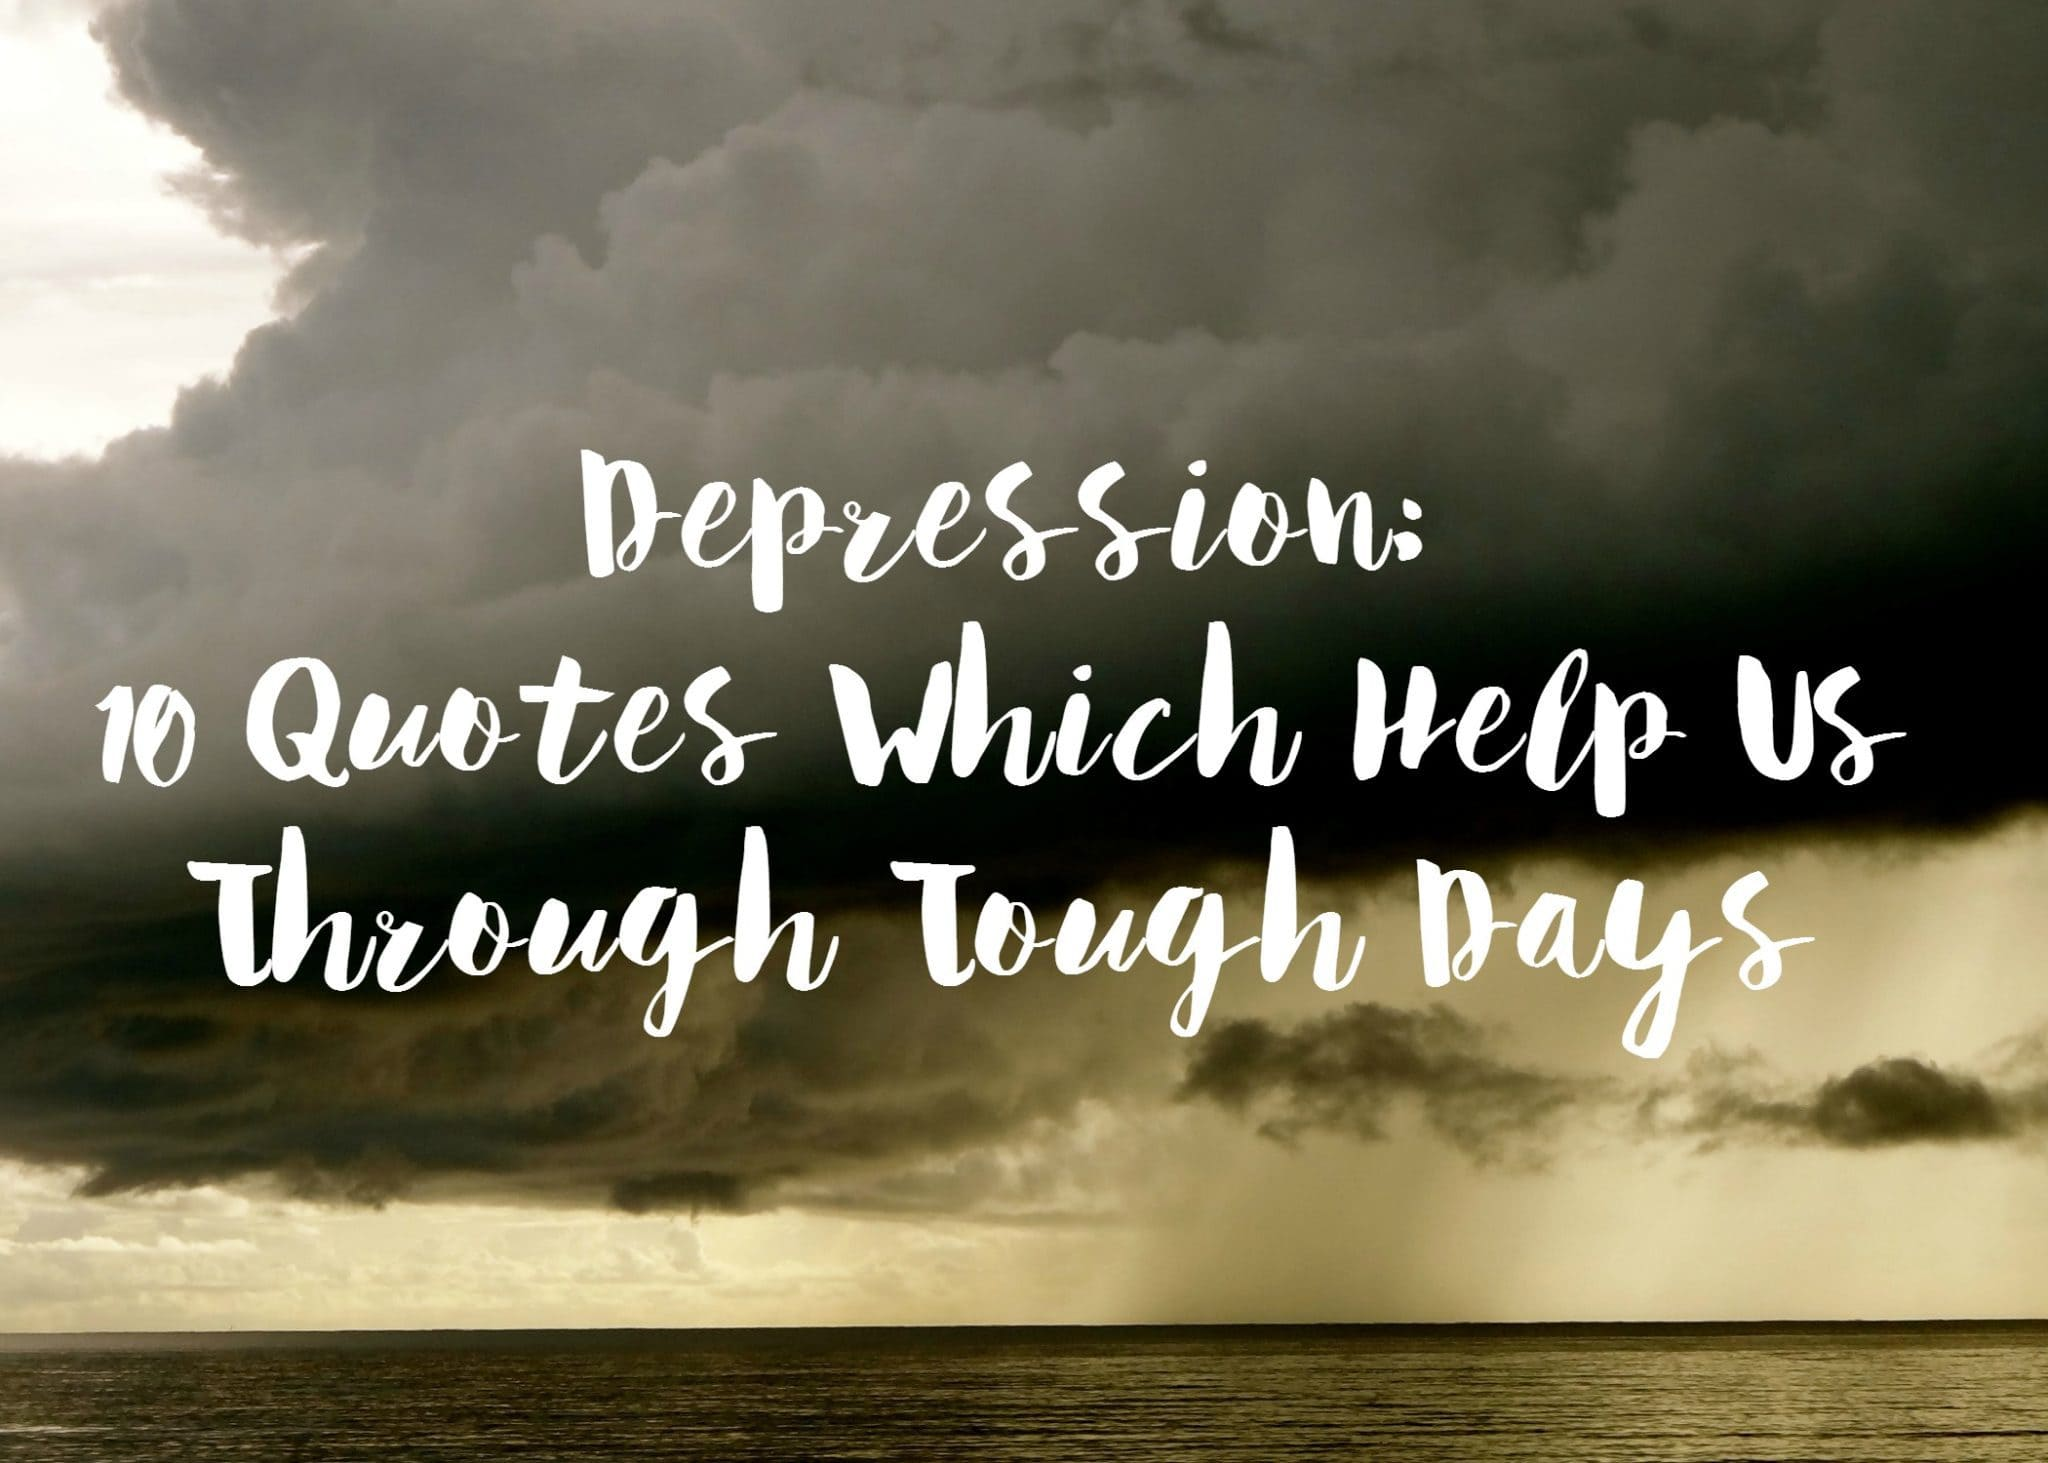 Quotes To Help Depression Amusing Depression 10 Quotes Which Help Us Through Tough Days